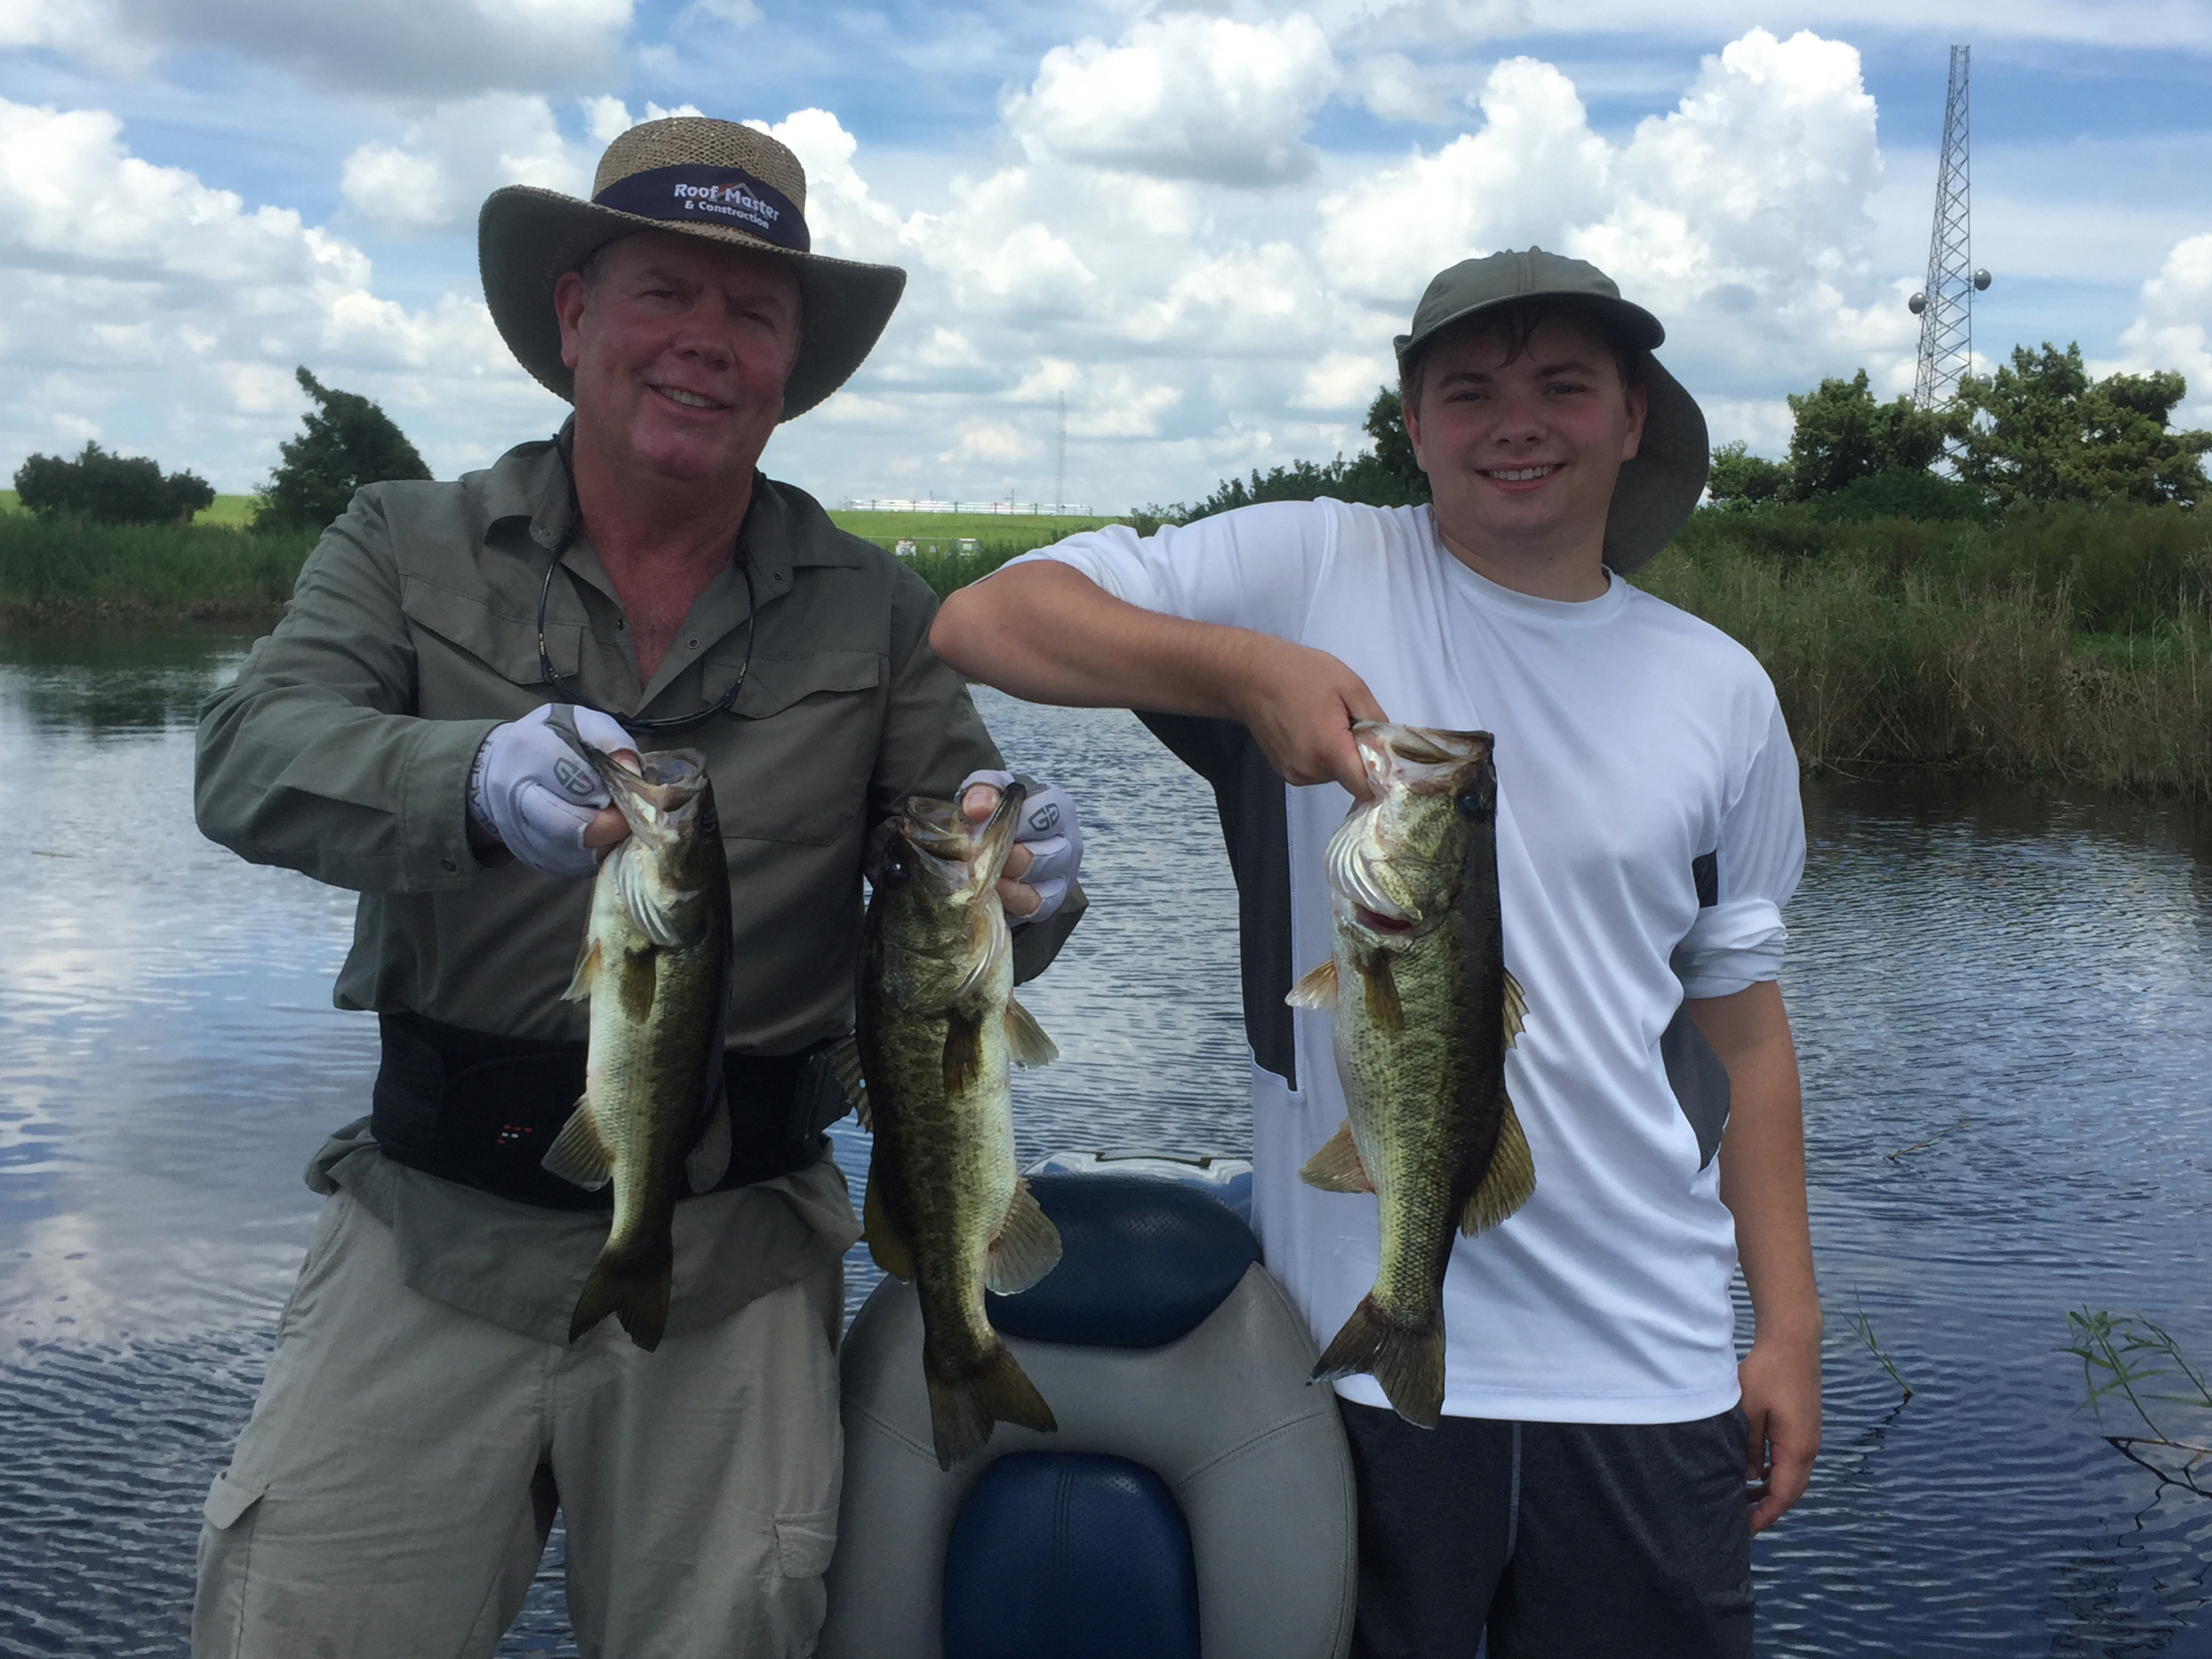 Lake okeechobee fishing report archives page 2 of 104 for Bass fishing report